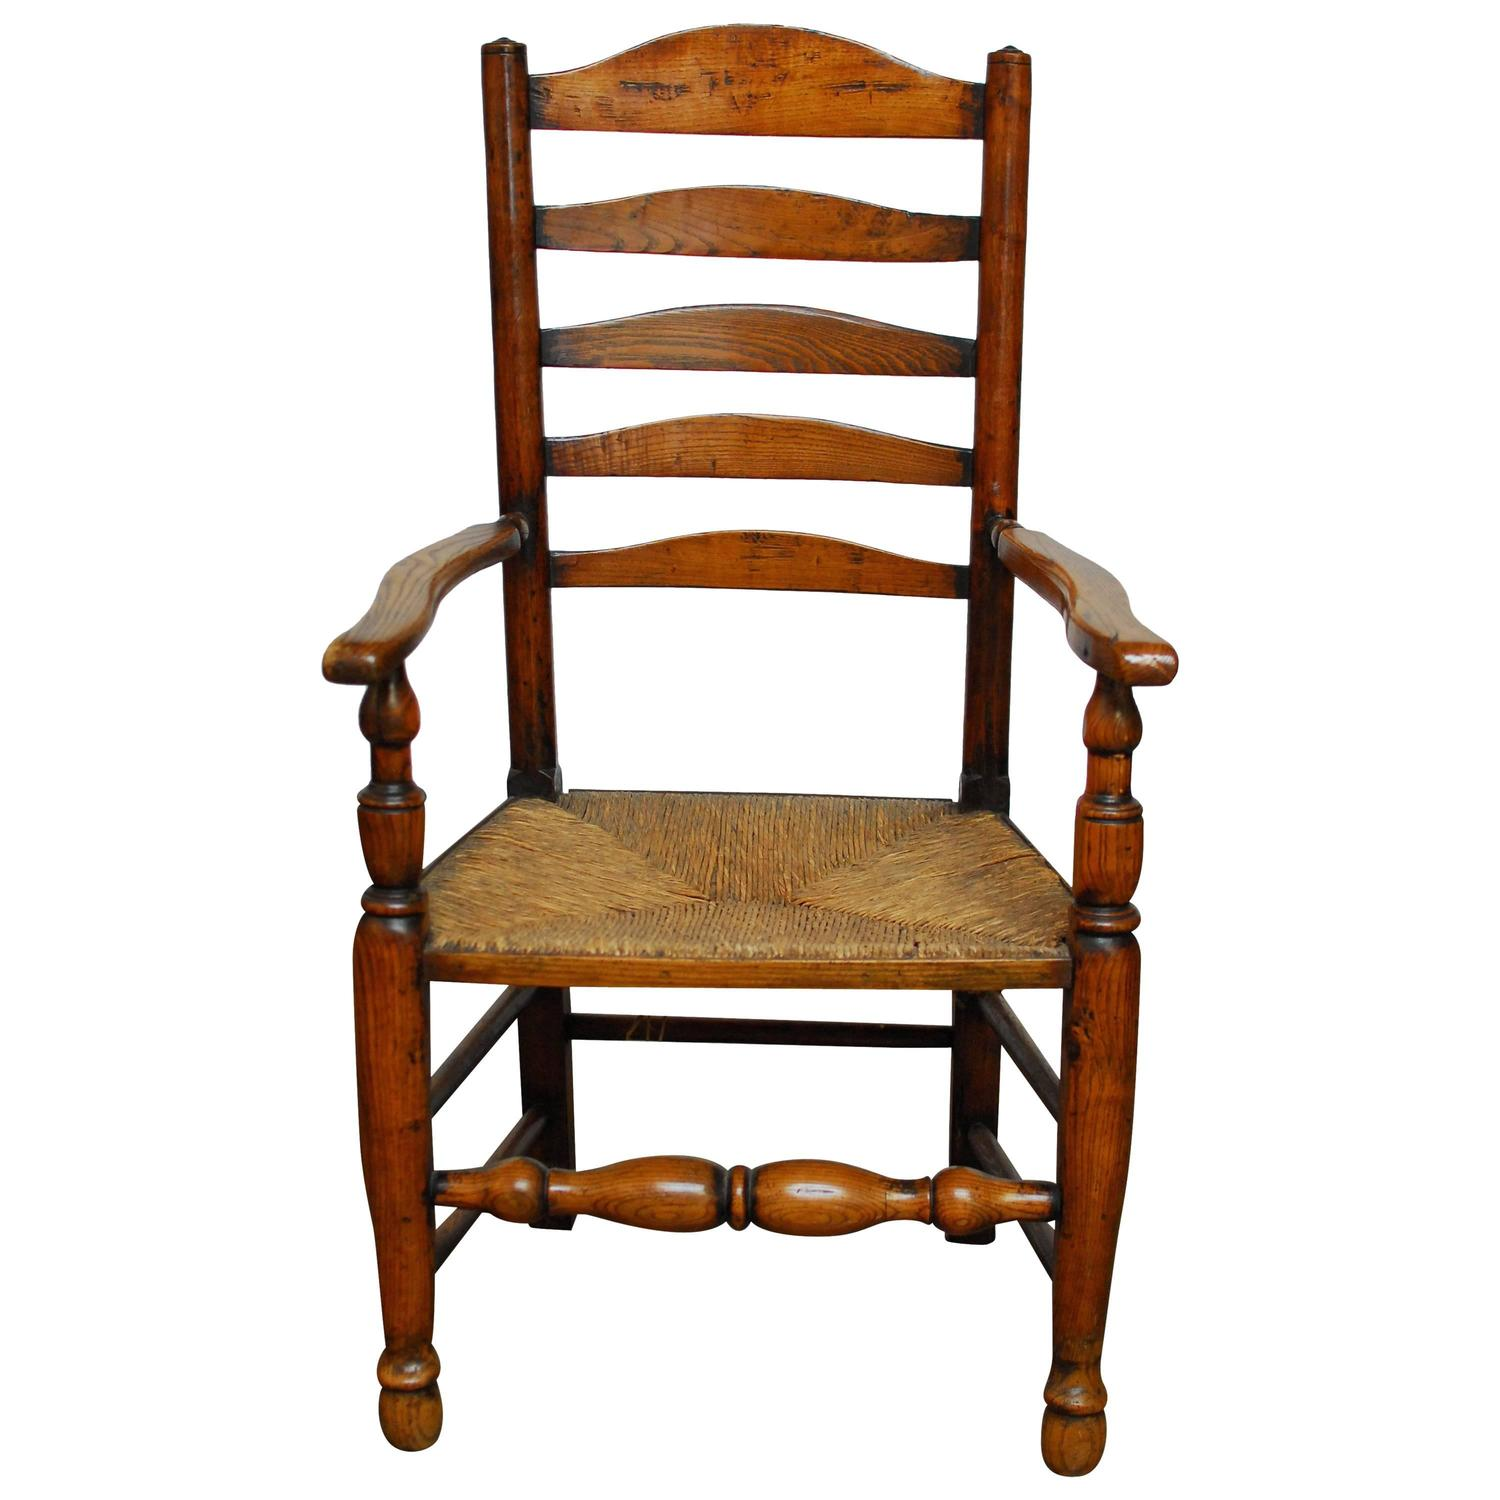 19th Century English Ladder Back Chair For Sale at 1stdibs